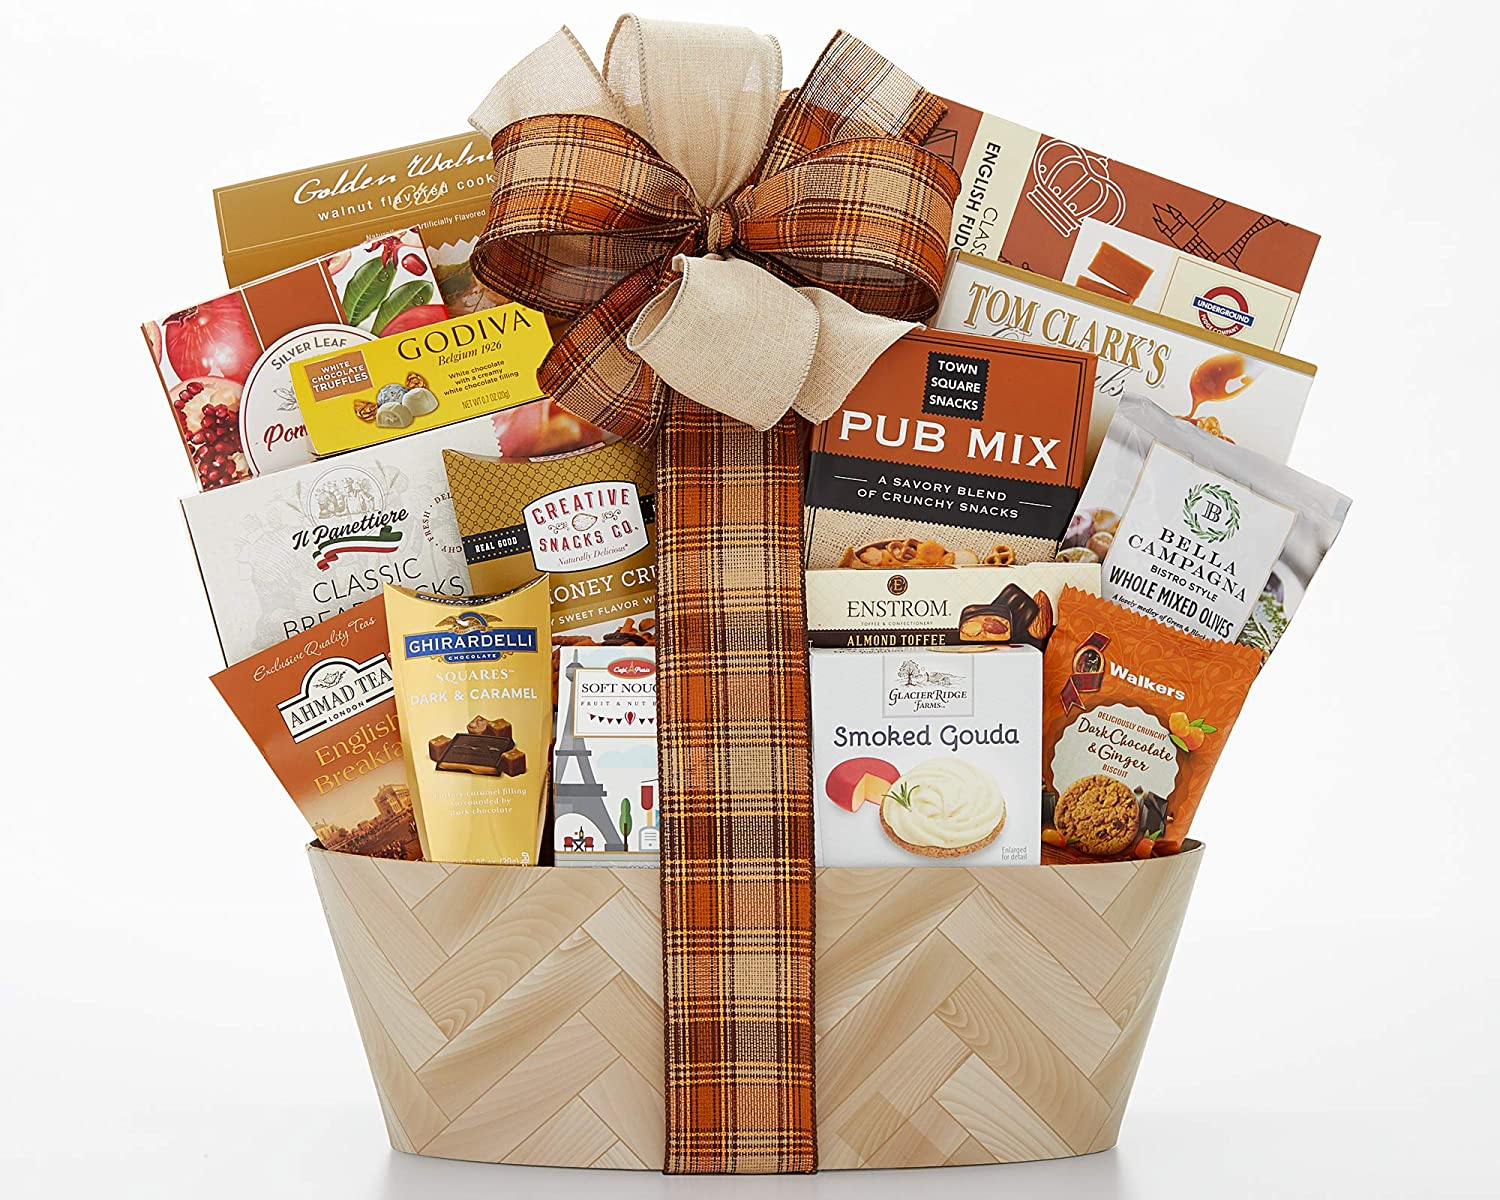 Sympathy Gift Basket Heartfelt Thoughts Our Sincere Condolences Thinking Of You In Times Of Sorrow Bereavement by Wine Country Gift Baskets